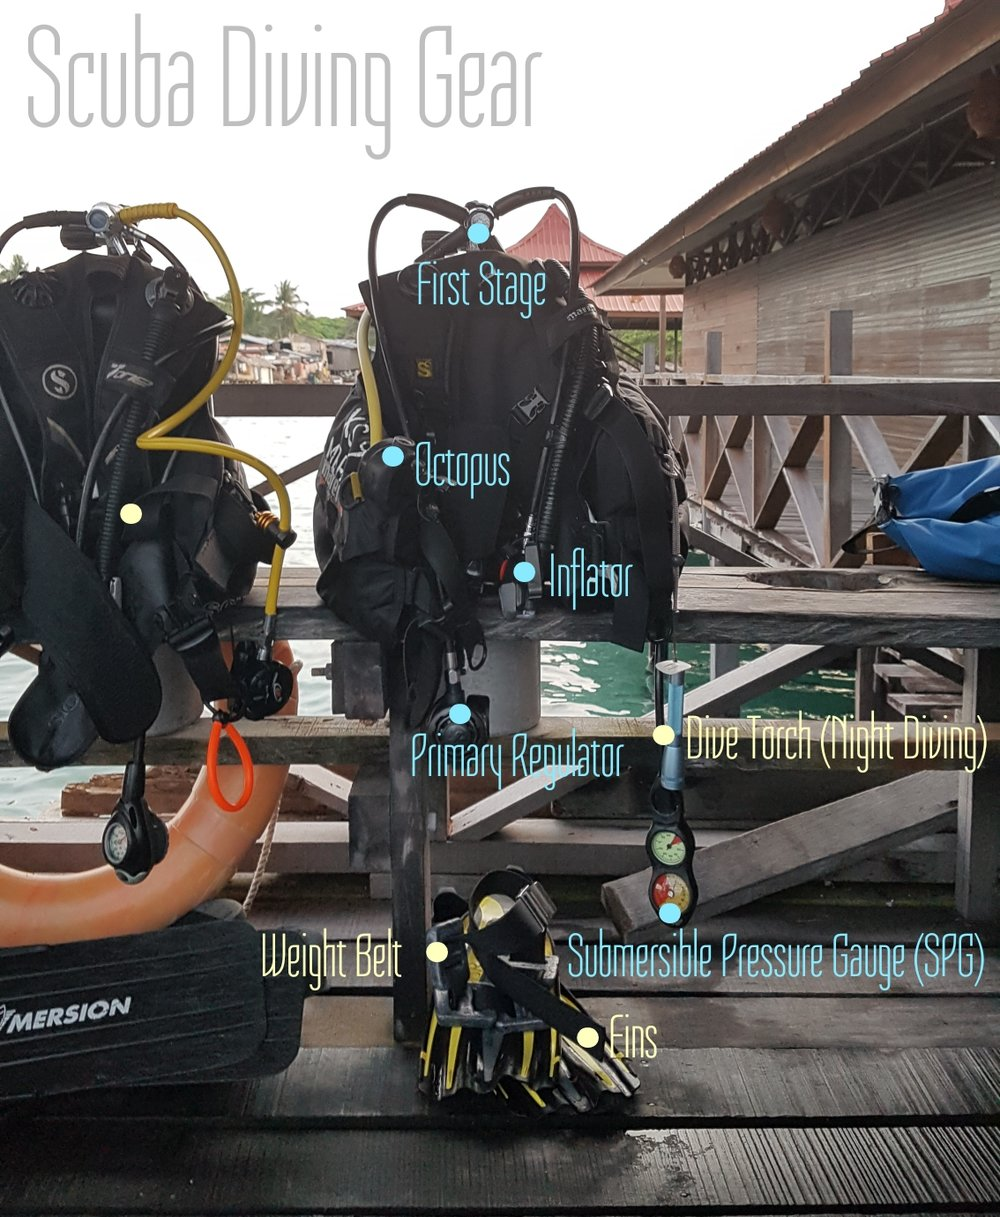 Diving (Scuba) gear. I've labelled the parts for the interested (which I hope you are because I'm going to bring you on a visual adventure of under the sea), and for refreshers like me.